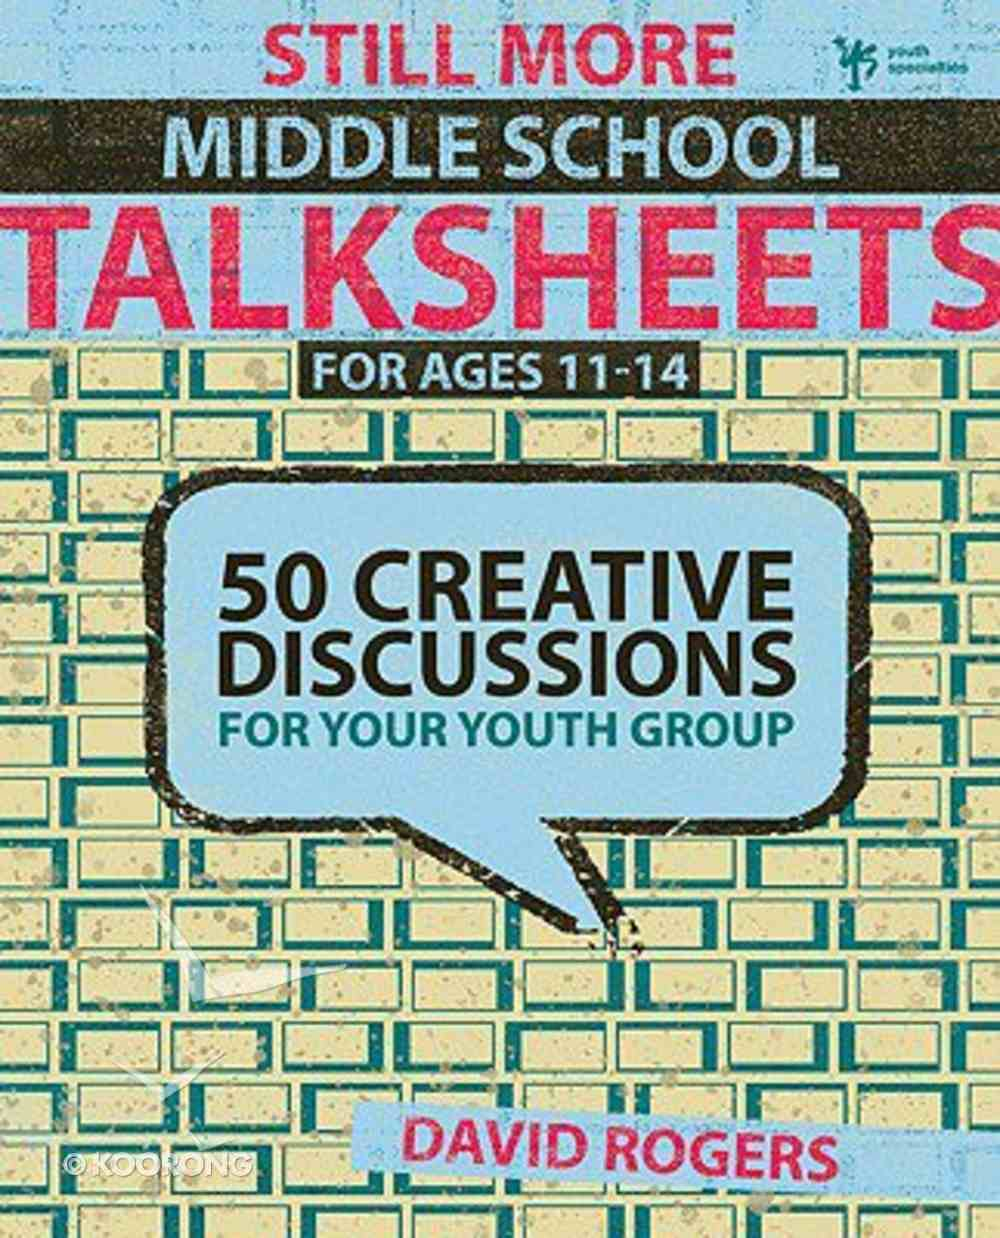 Still More Middle School Creative Discussions (11-14) (Talksheets Series) Paperback